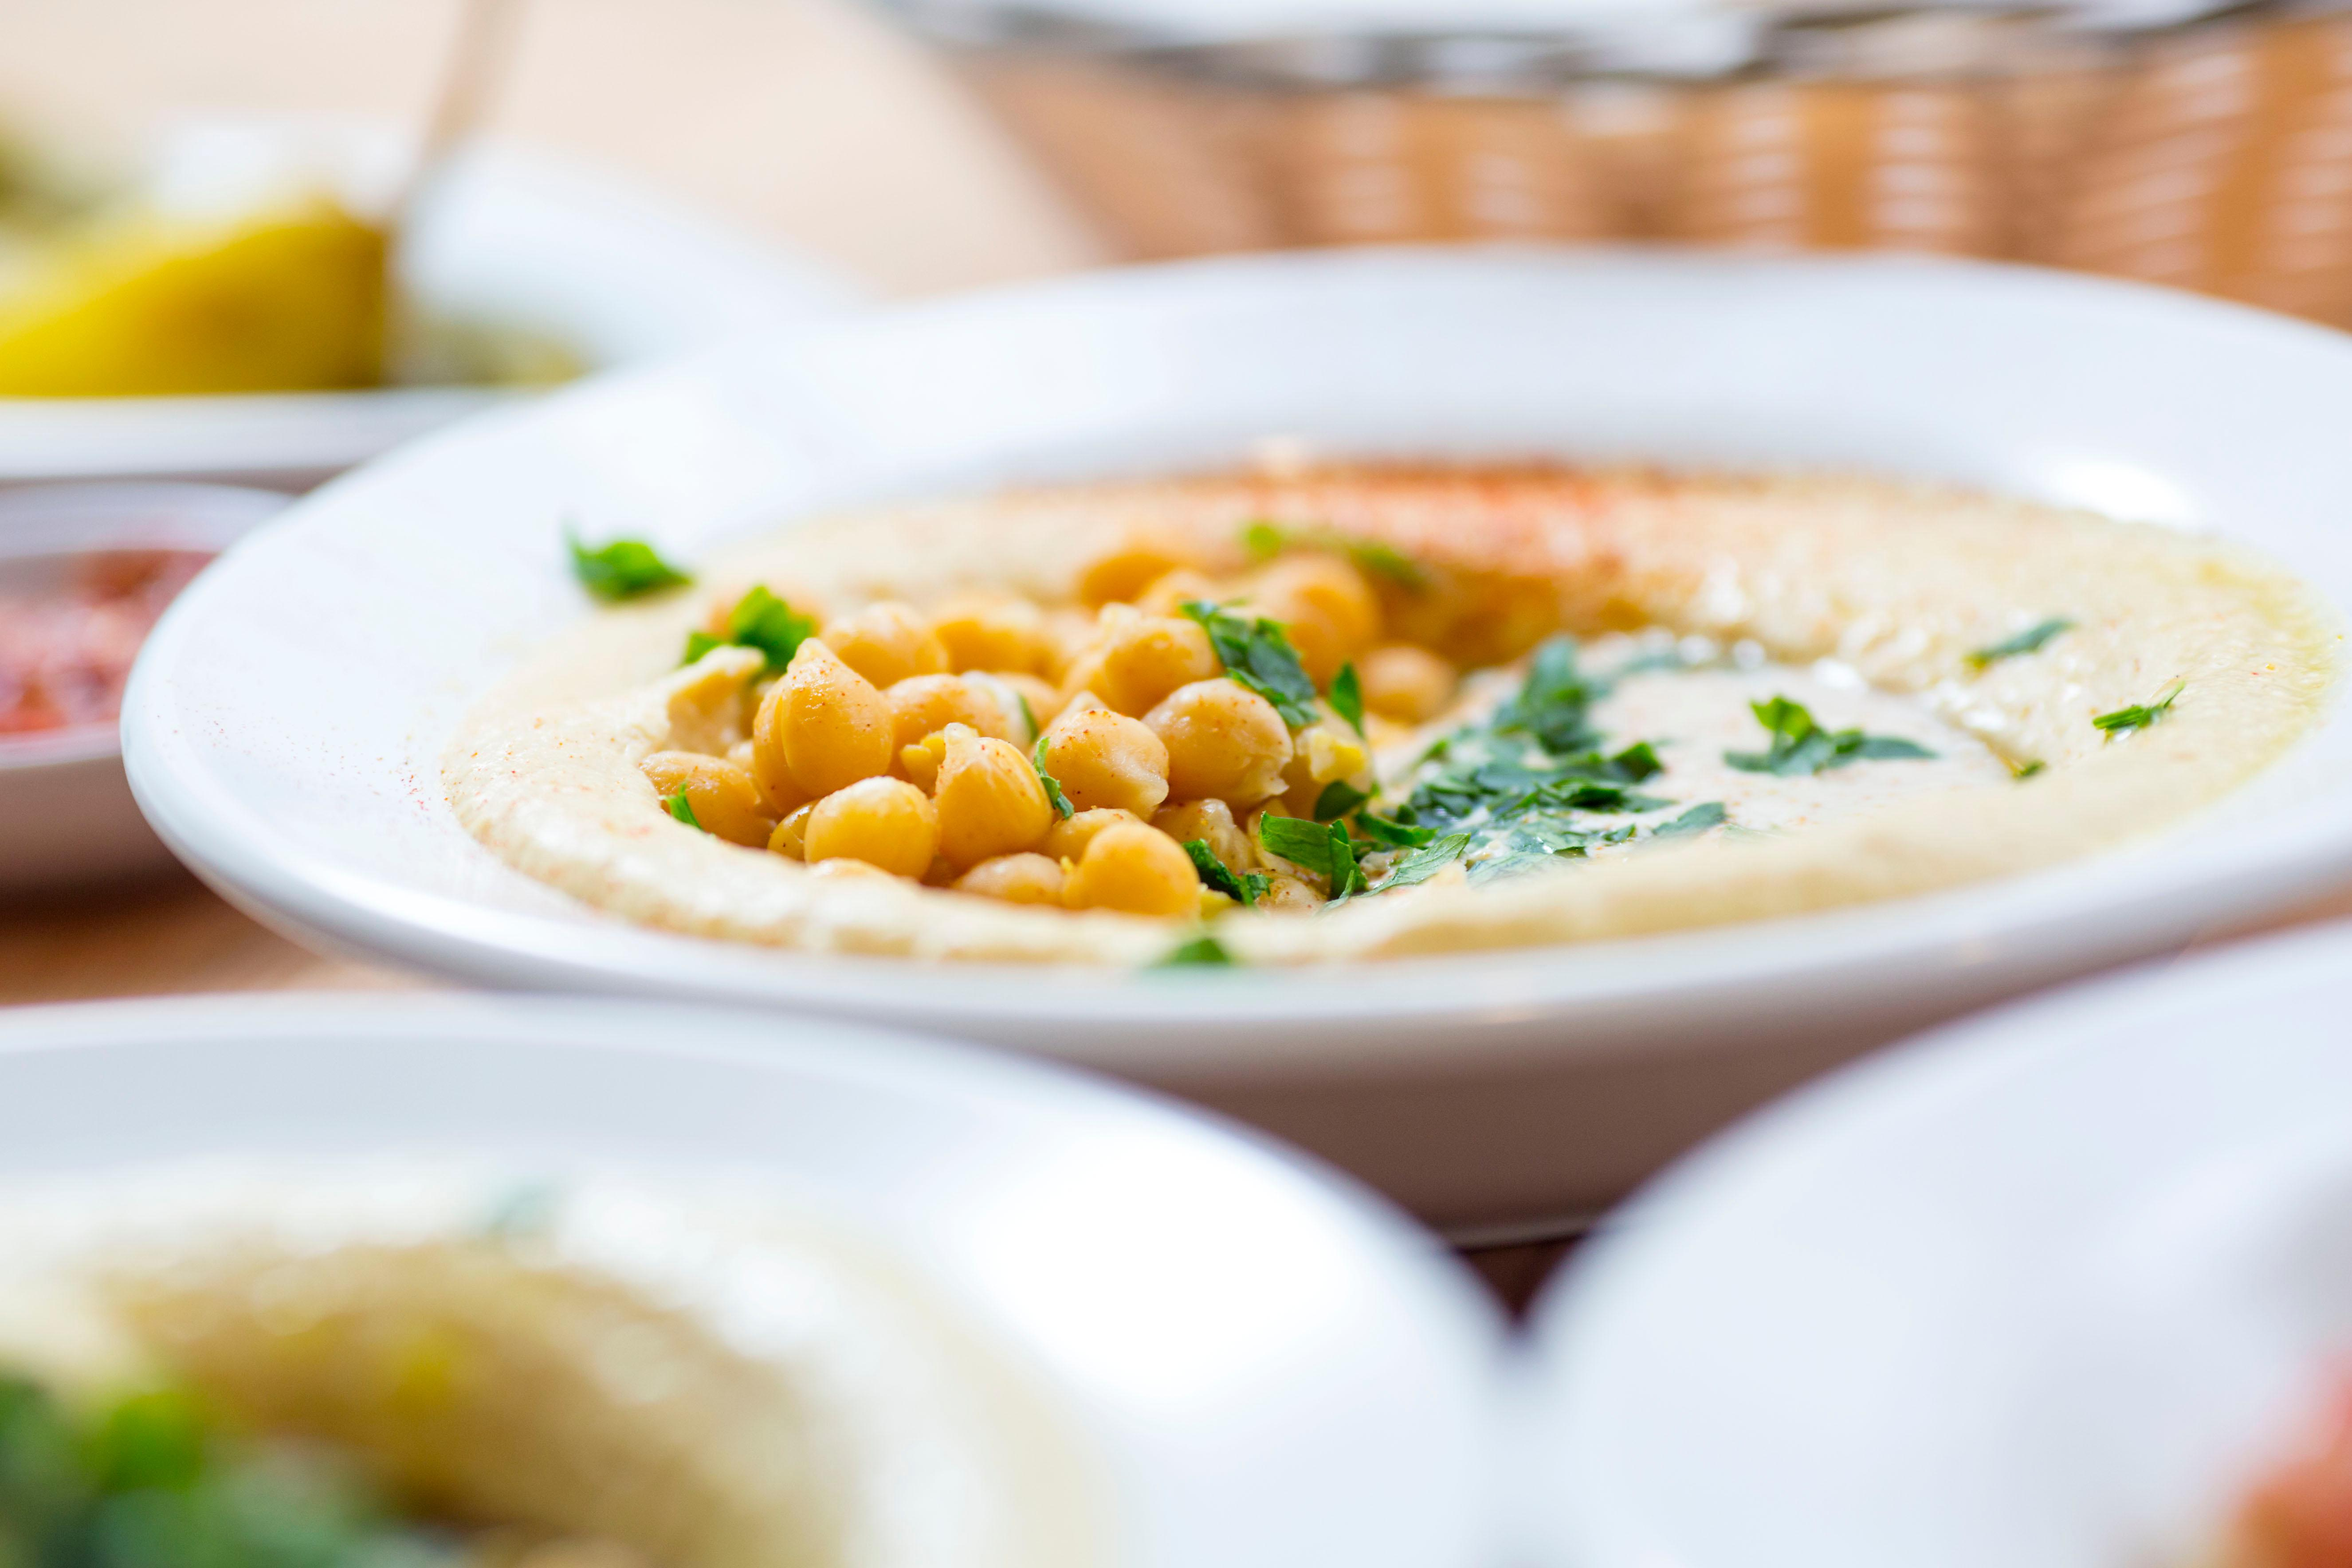 "The Classic - with tender boiled chickpeas and citrusy nutty tahina.{&nbsp;}<p></p><p>Aviv Hummus Bar is a 100% Israeli hummus bar, straight from the streets of Tel Aviv. And now, it's on Capitol Hill! Fun fact: Hummus literally means chickpeas. And while the west has kind of appropriated hummus and made it its own thing, traditional hummus isn't a sauce, or a dip, it's supposed to be a eaten as a meal consisting of smashed chickpeas, ""tahina"" and lemon. Enter Aviv Hummus Bar - trying to educate through this food. The Hummus Bar is located on 107 15th Ave E, Seattle. (Image: Sy Bean / Seattle Refined){&nbsp;}<br></p>"